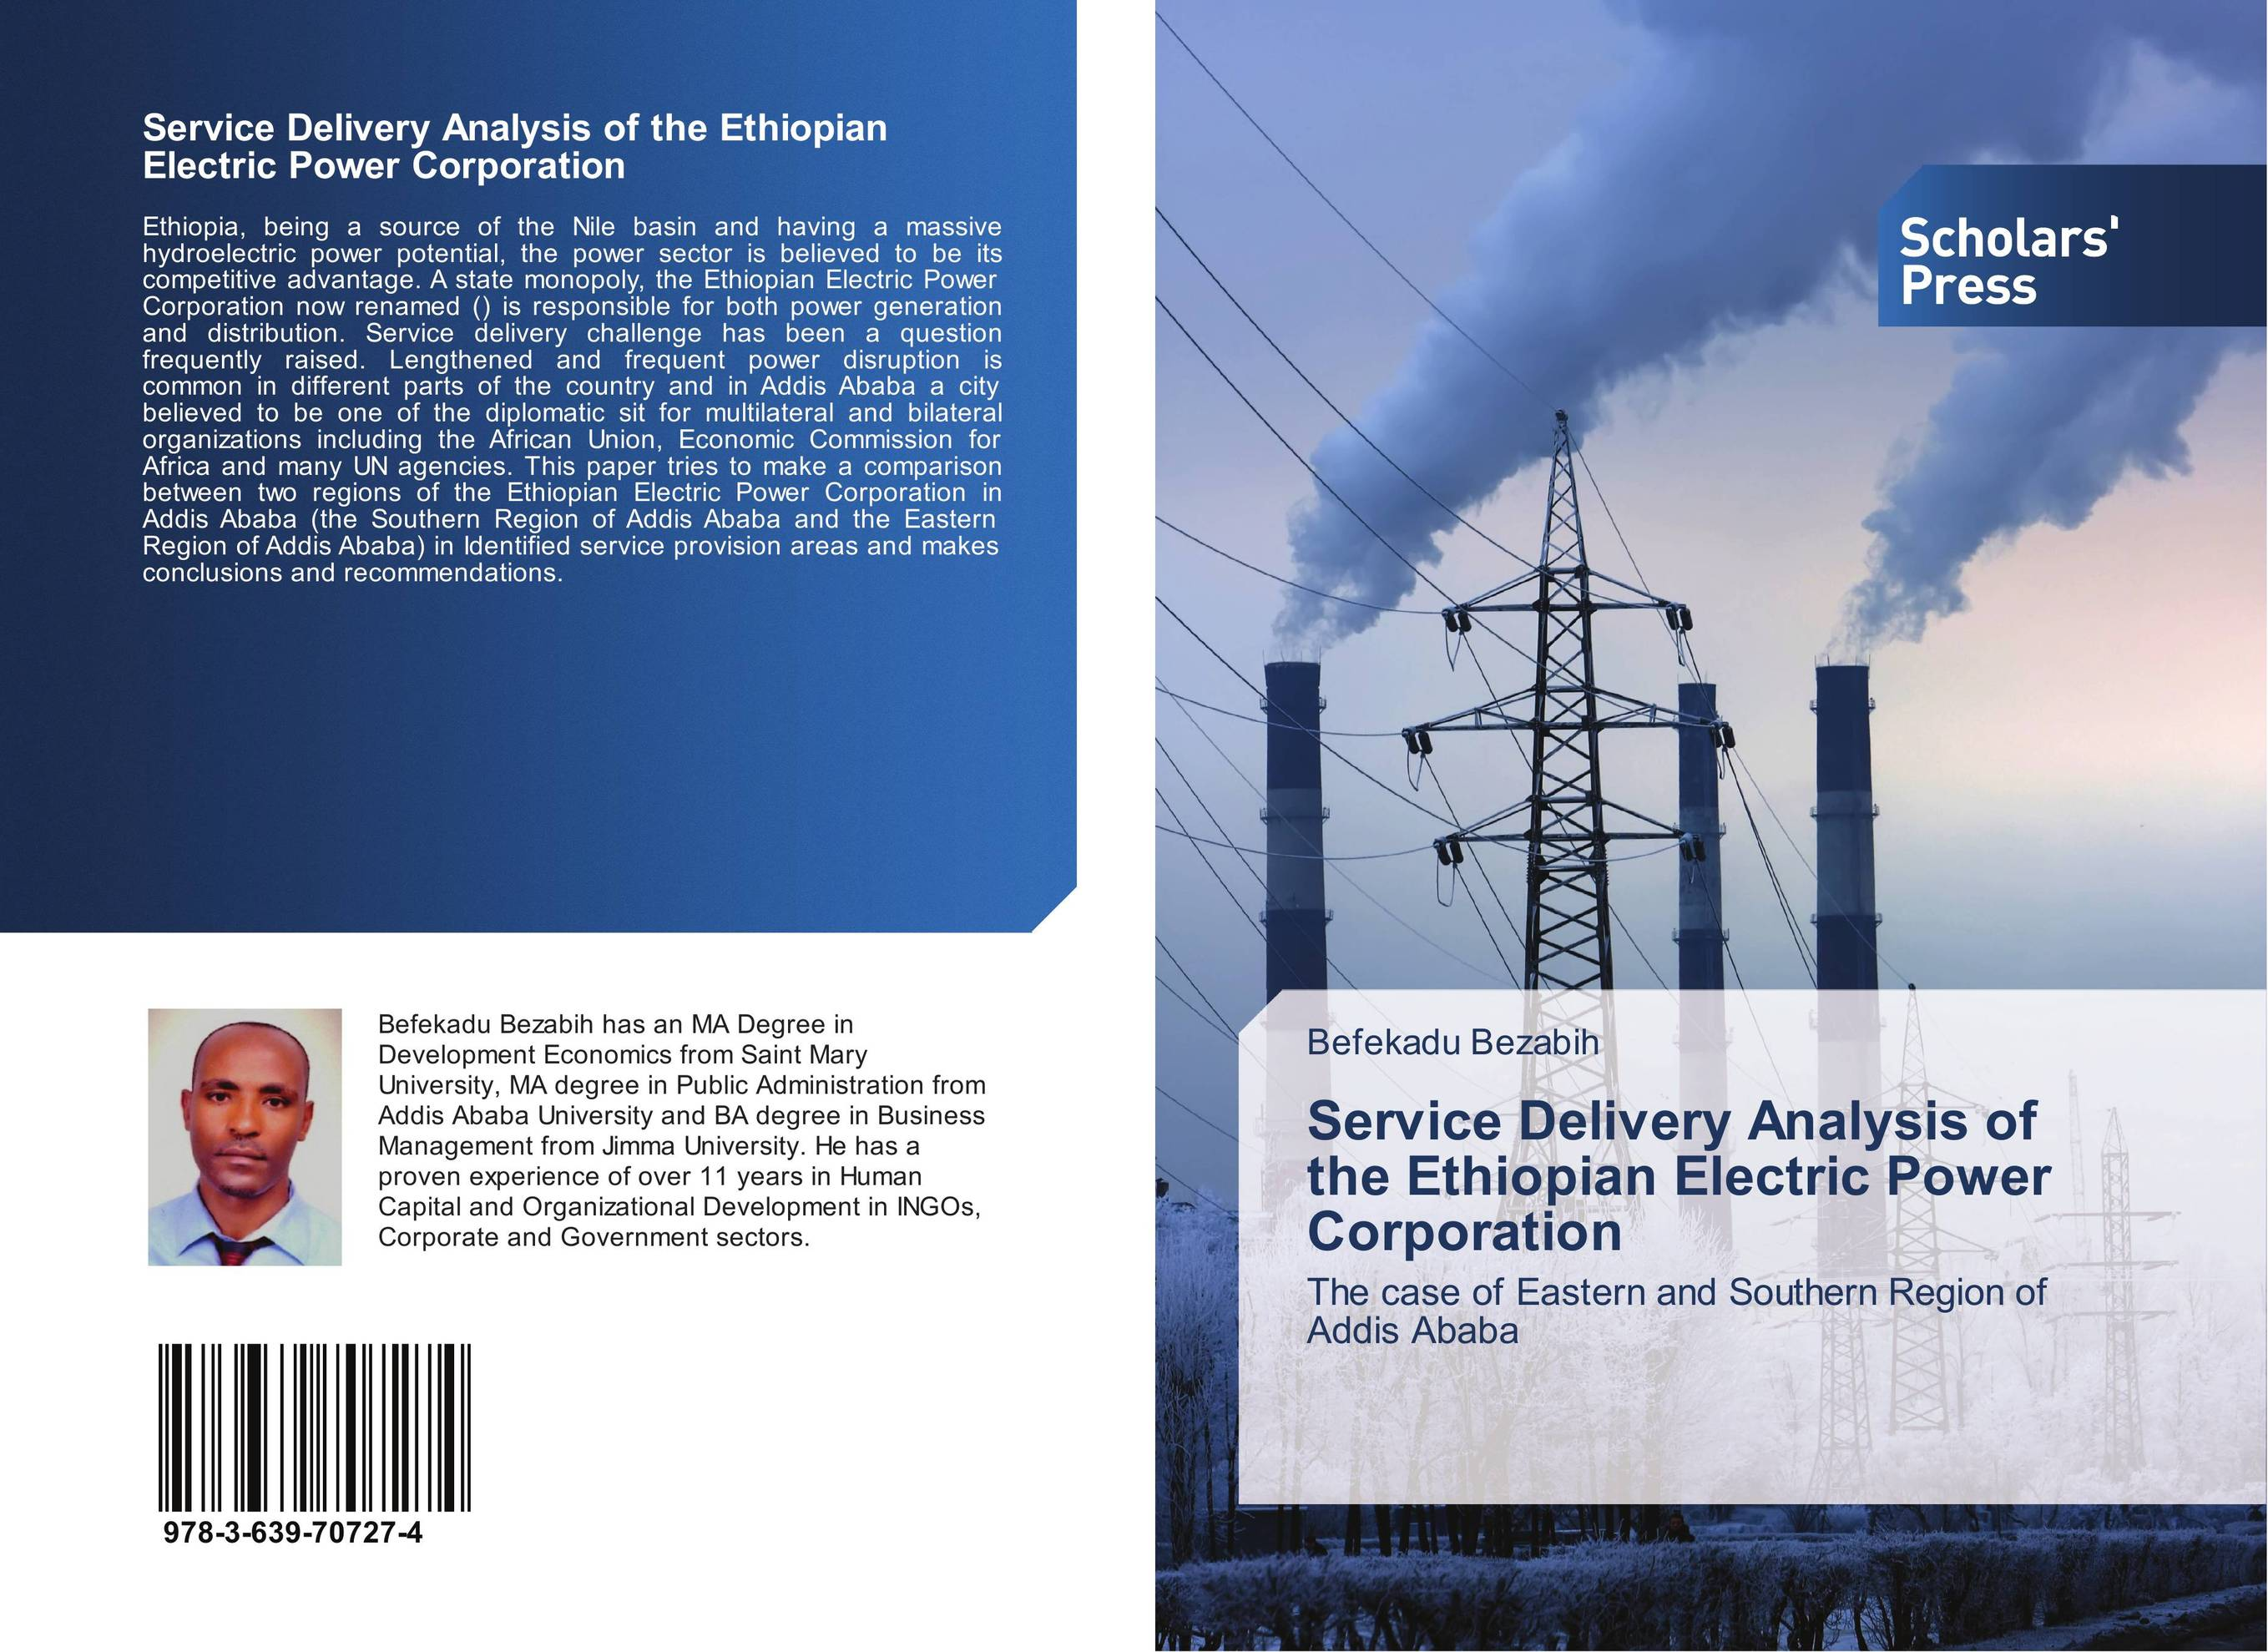 Фото Service Delivery Analysis of the Ethiopian Electric Power Corporation cervical cancer in amhara region in ethiopia